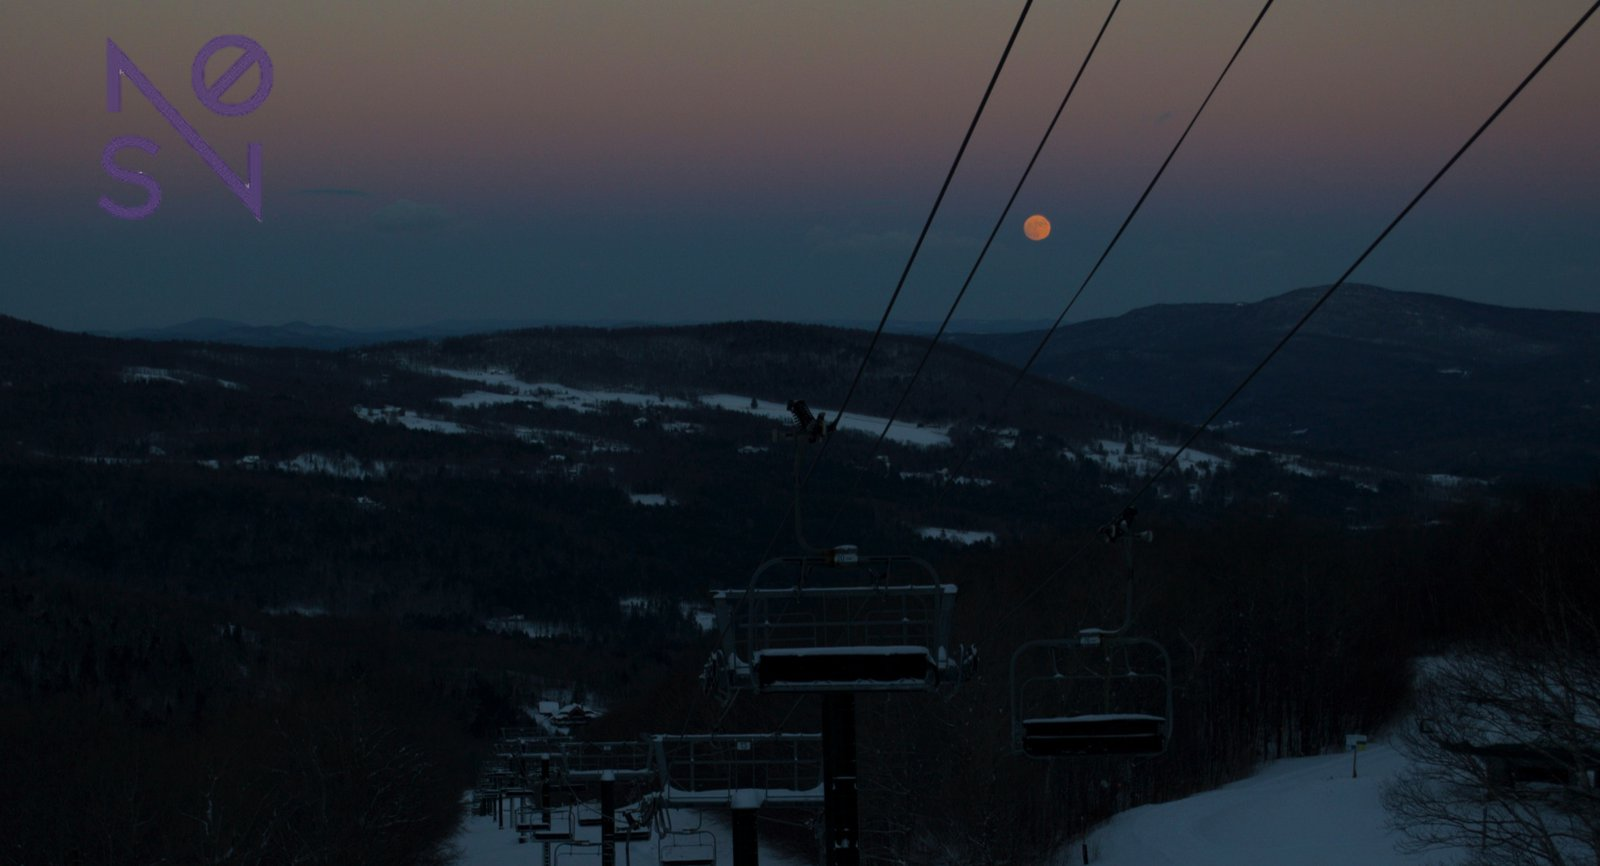 The Moon Cusping the Ridge Line